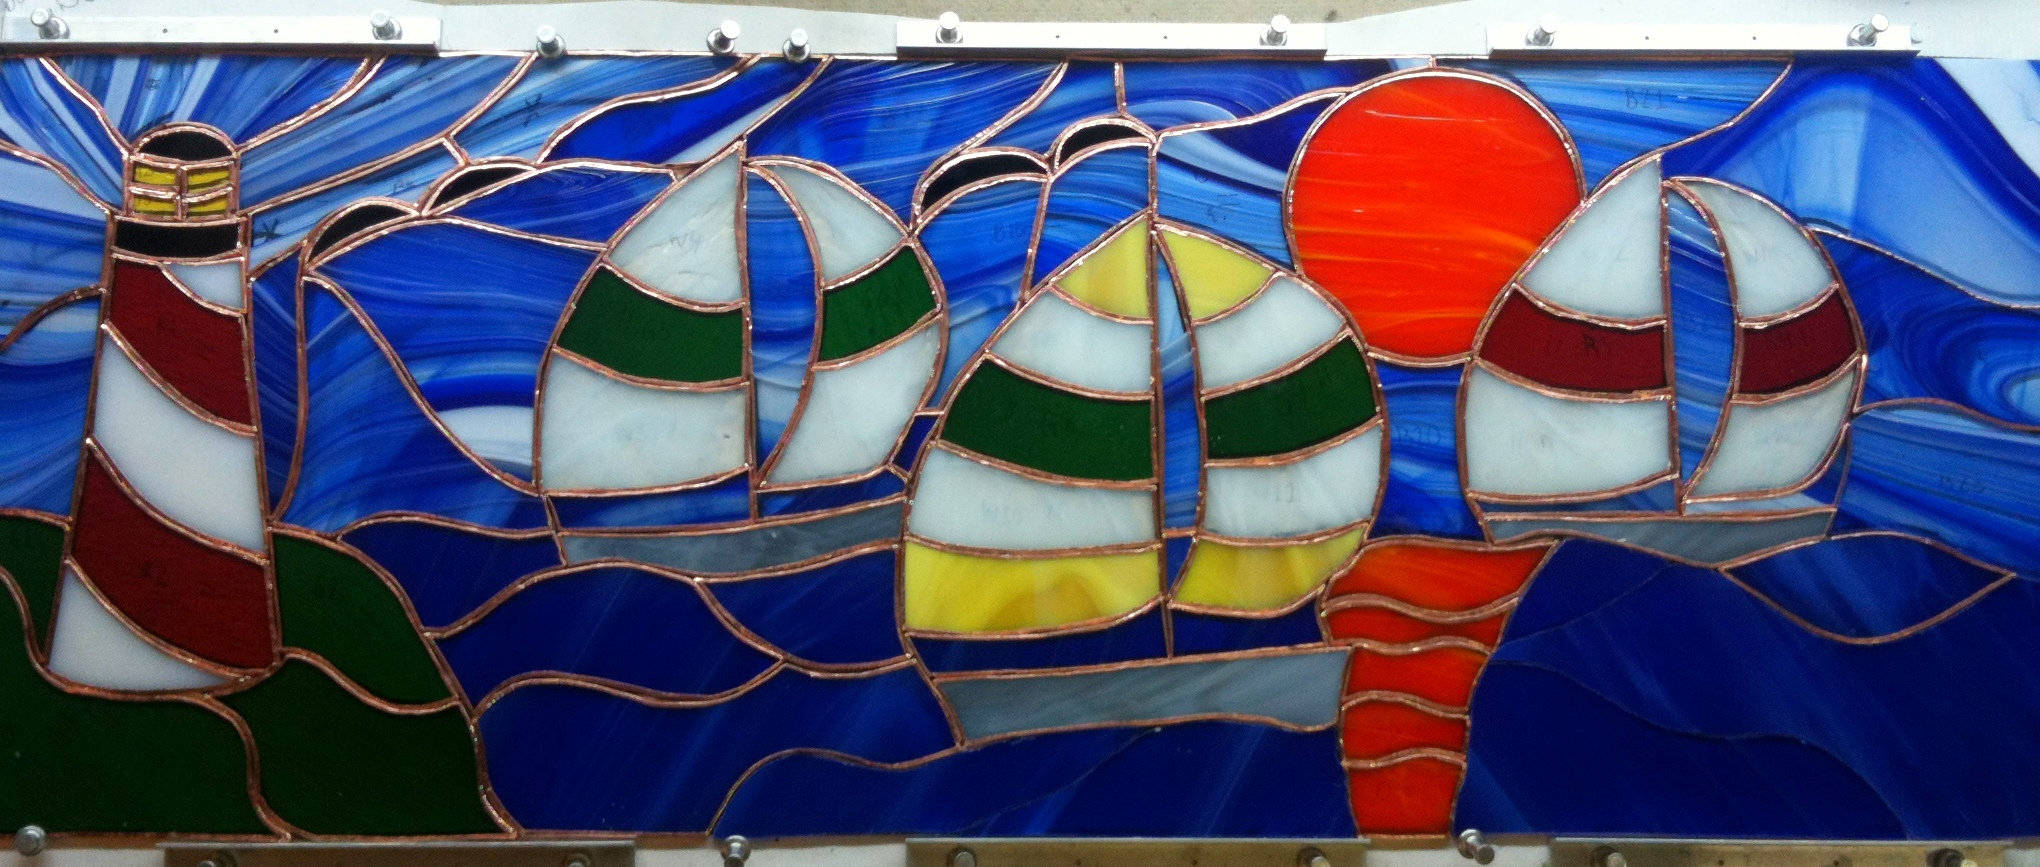 stained_glass_sailboat_lighthouse.JPG